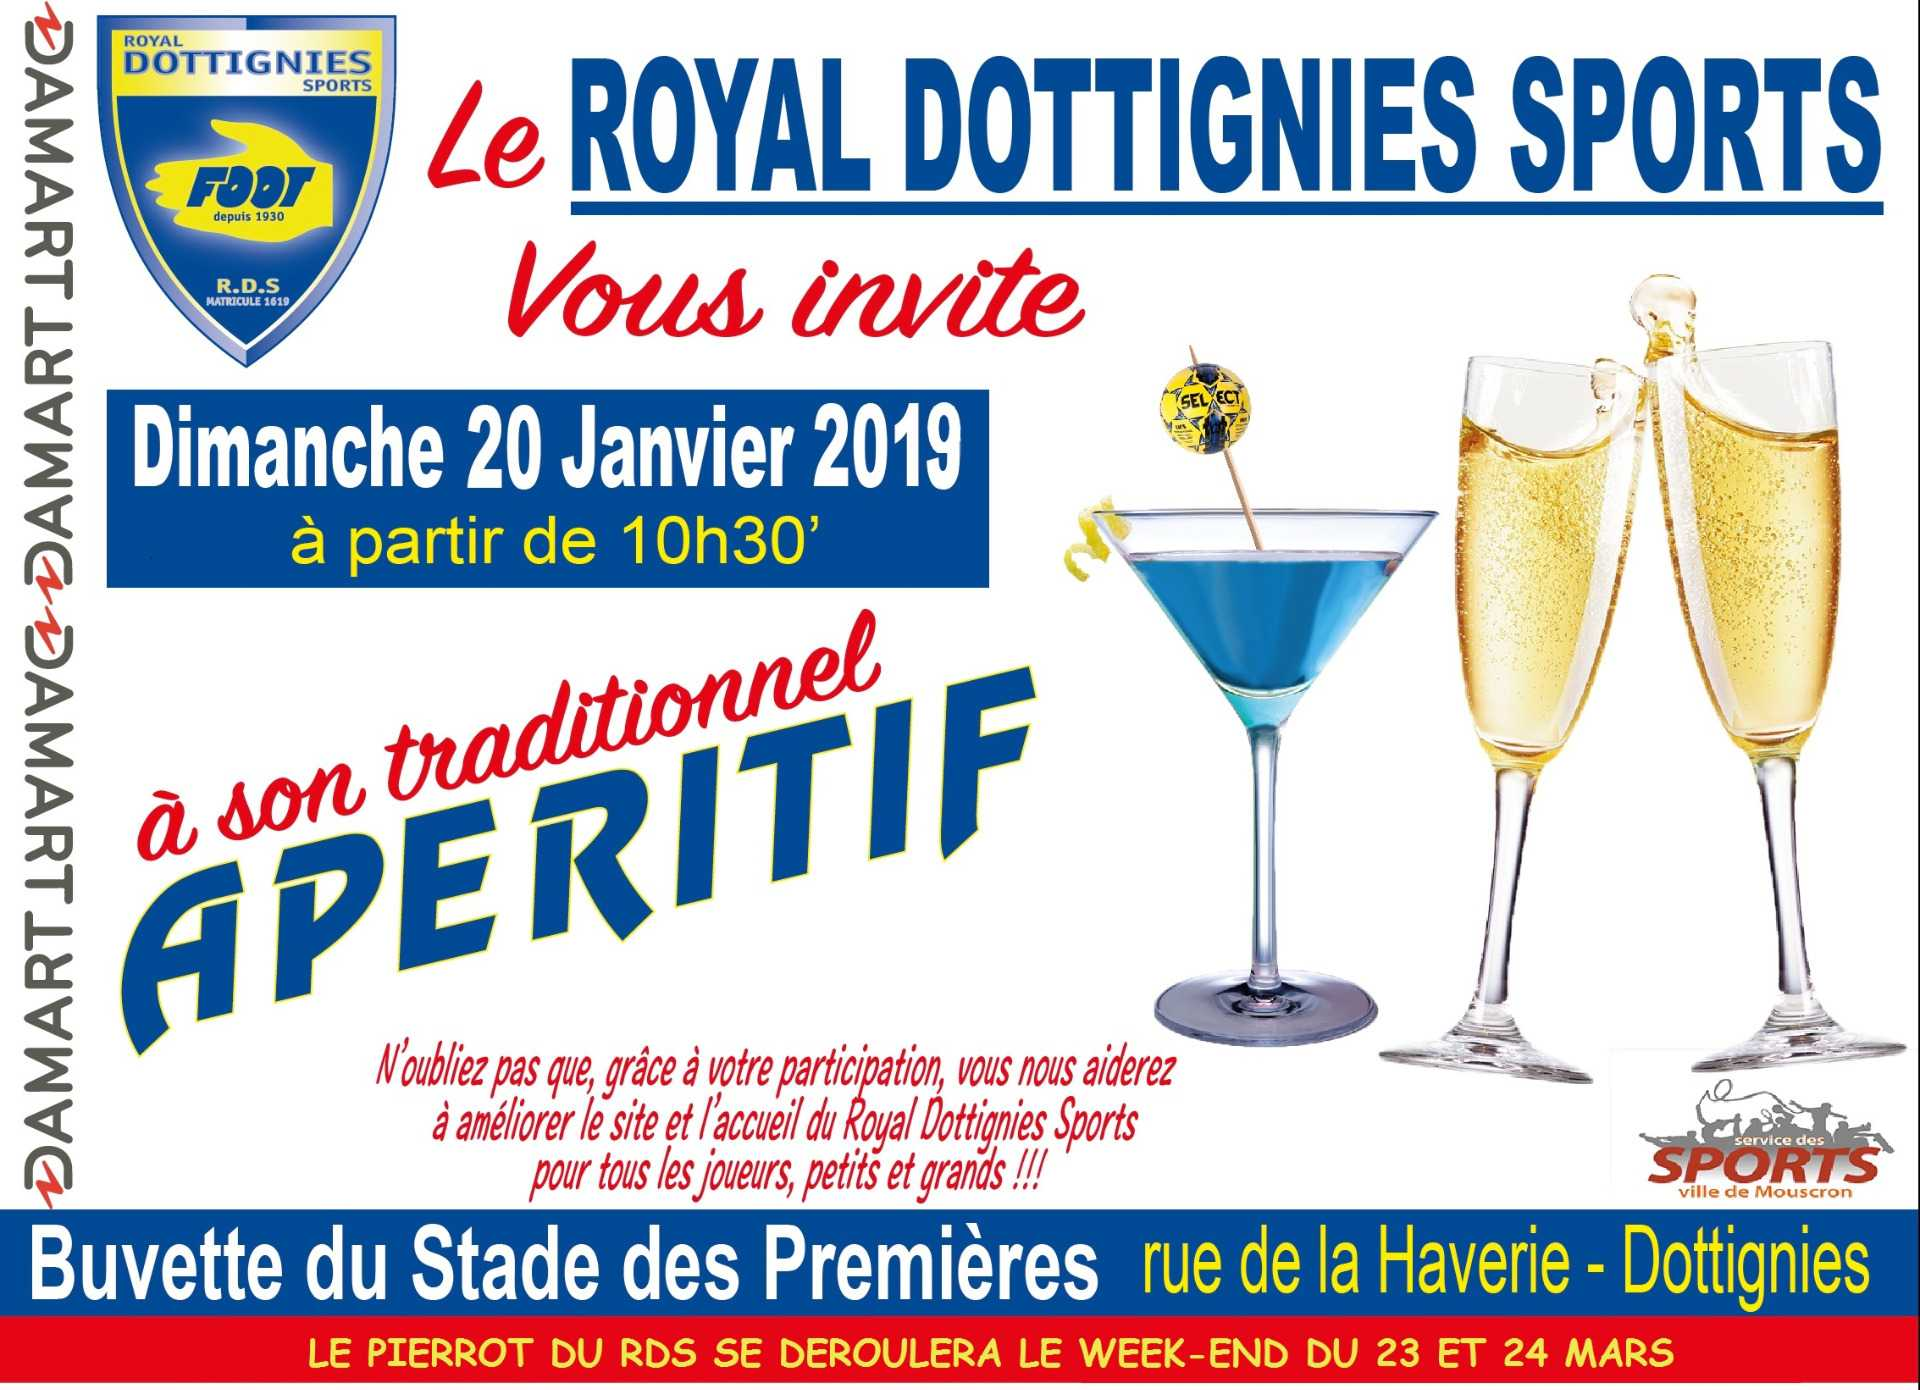 Apero du Royal Dottignies Sports